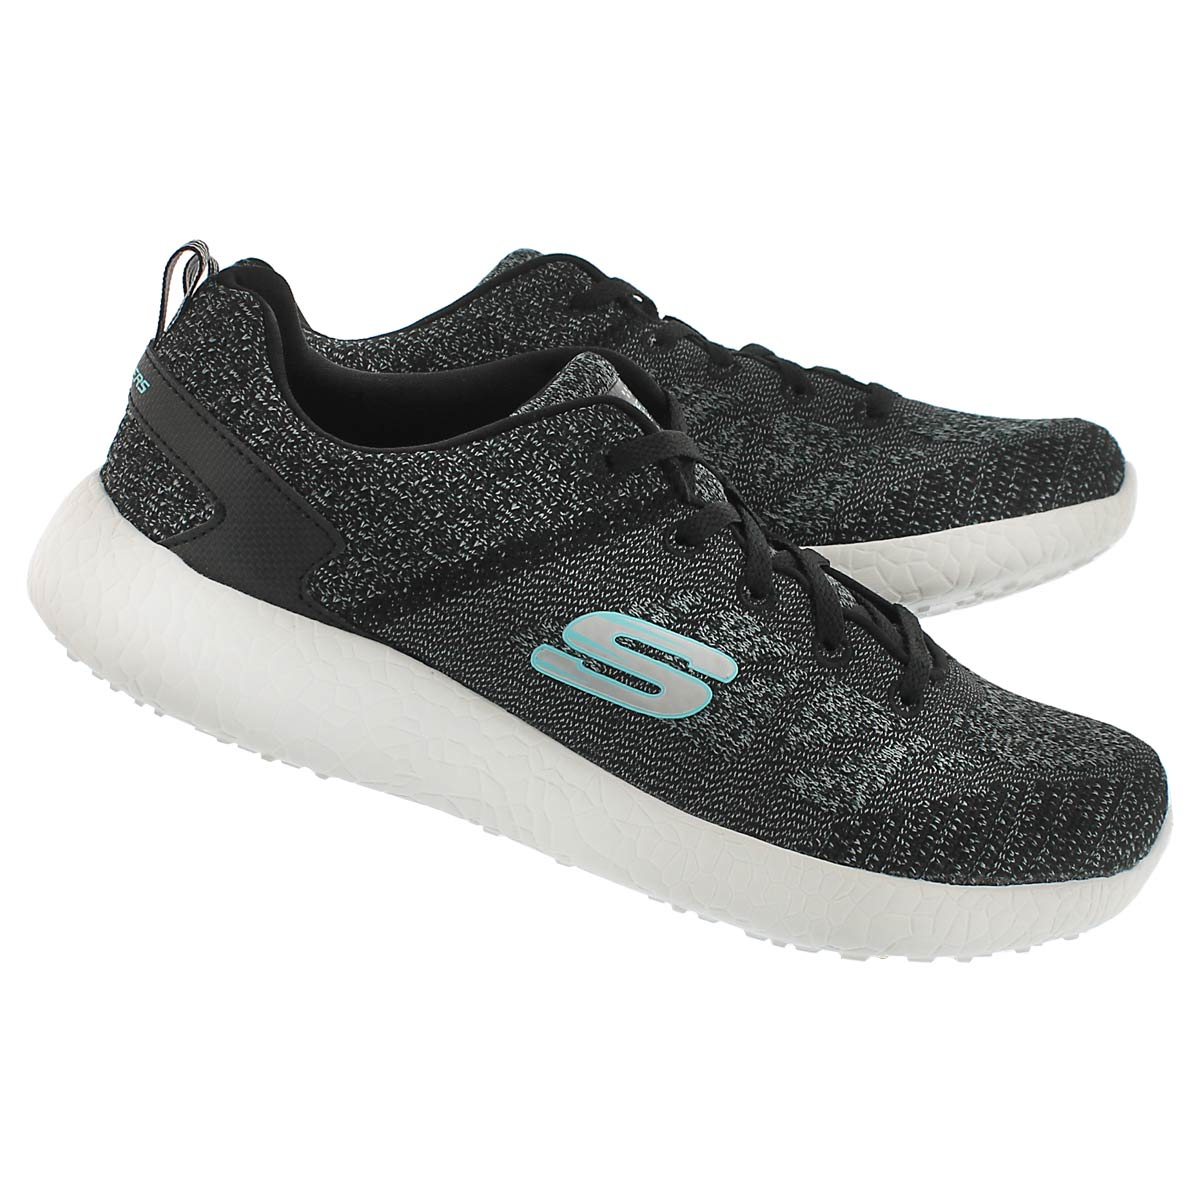 Lds Burst black lace up running shoe